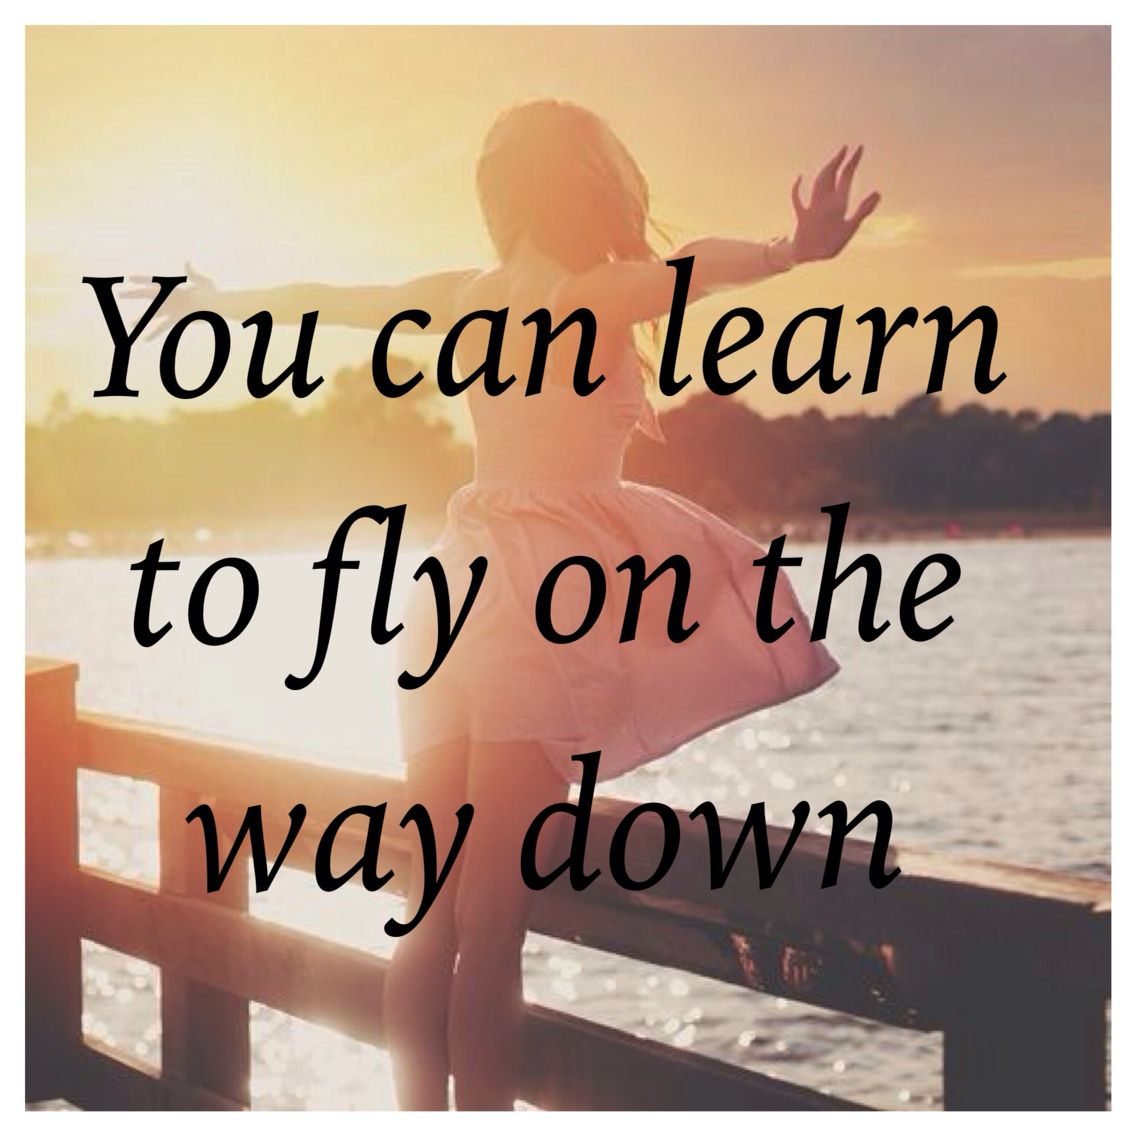 You Can Learn To Fly One The Way Down Spirit Quotes Country Quotes Free Spirit Quotes